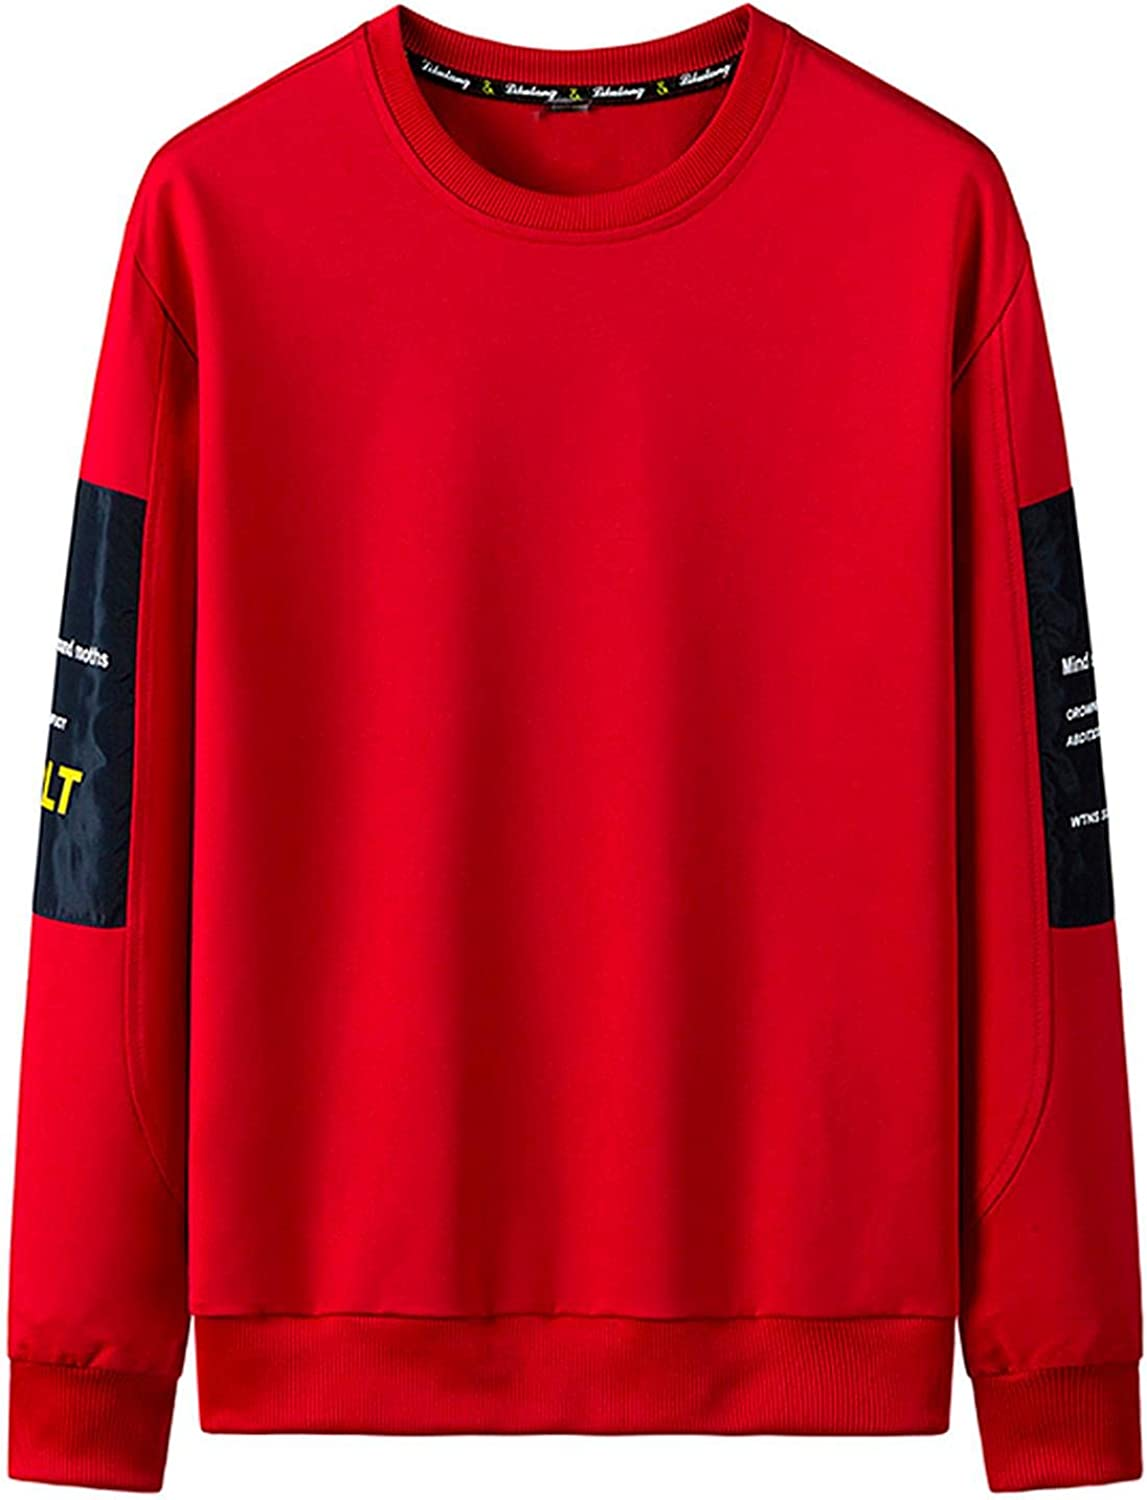 WoCoo Mens Crewneck Sweatshirt Casual Long Sleeve Patchwork Pullover Tops Lightweight Breathable Baggy Blouse